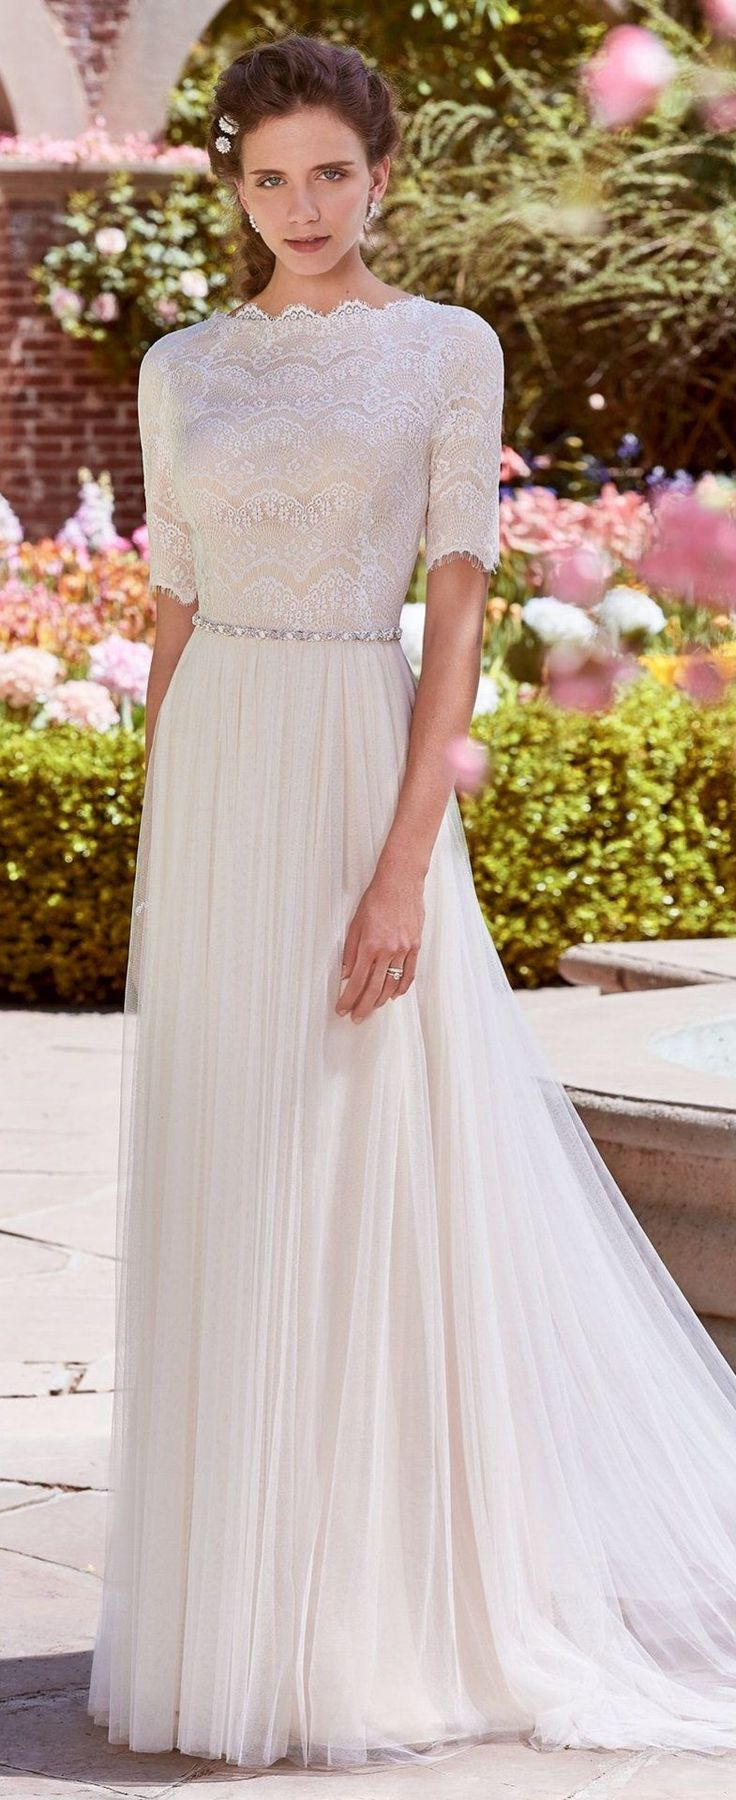 Rebecca Ingram Cathy Anne This Modest Wedding Dress Features A Lace Bodice With Elbow Length Sleeves And Bateau Neckline Bead Swarovski Crystal